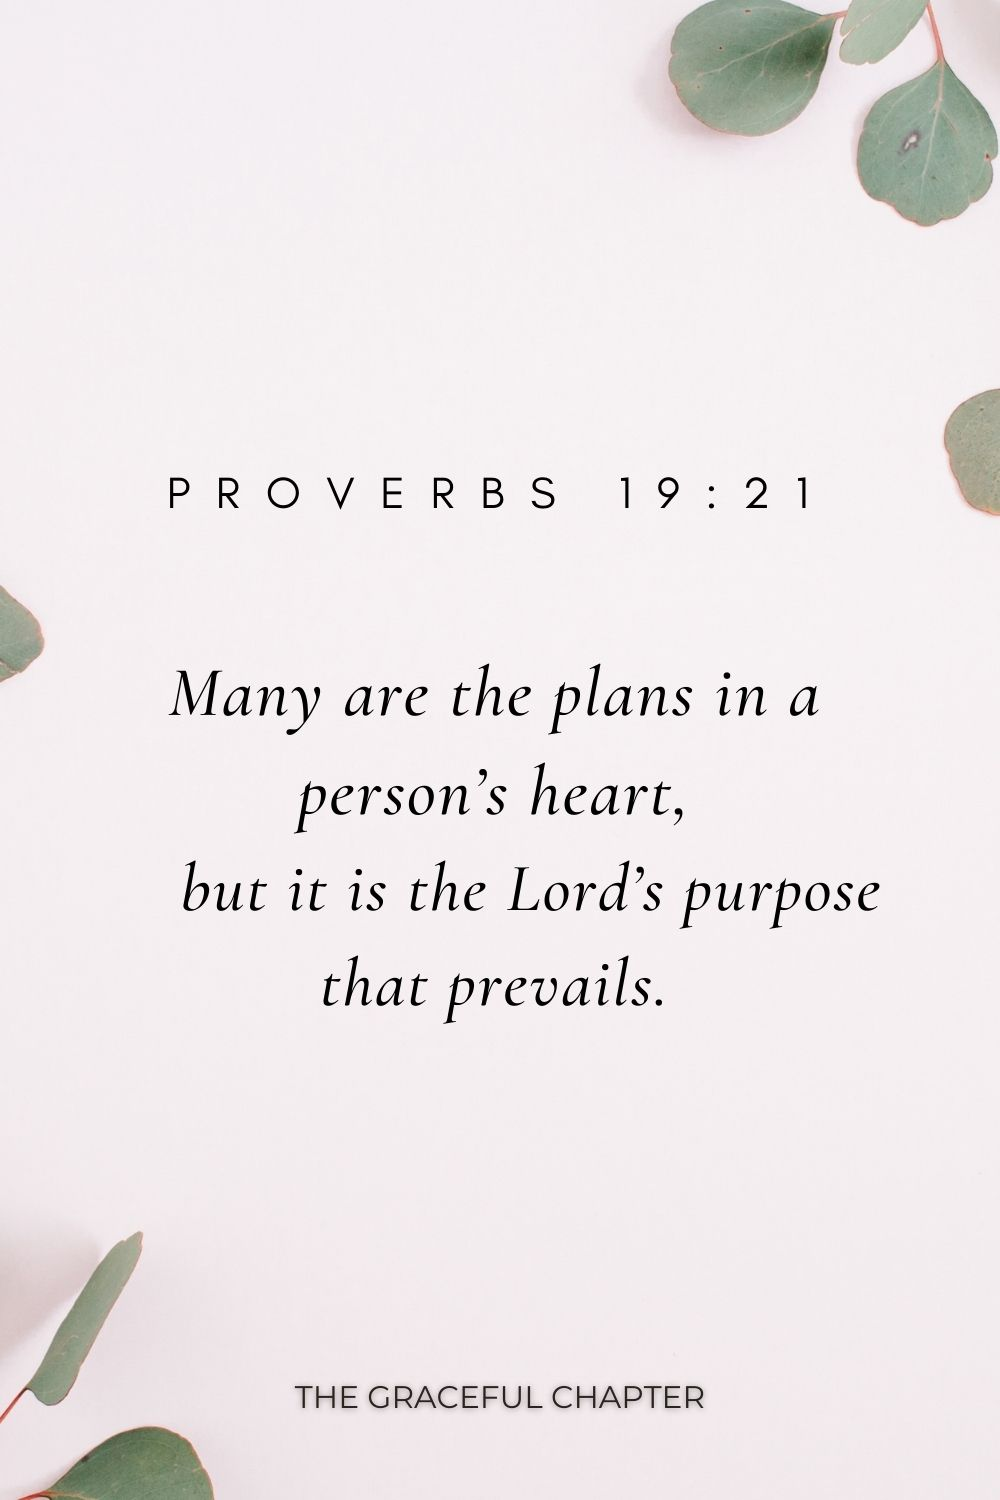 Many are the plans in a person's heart,     but it is the Lord's purpose that prevails. Proverbs 19:21